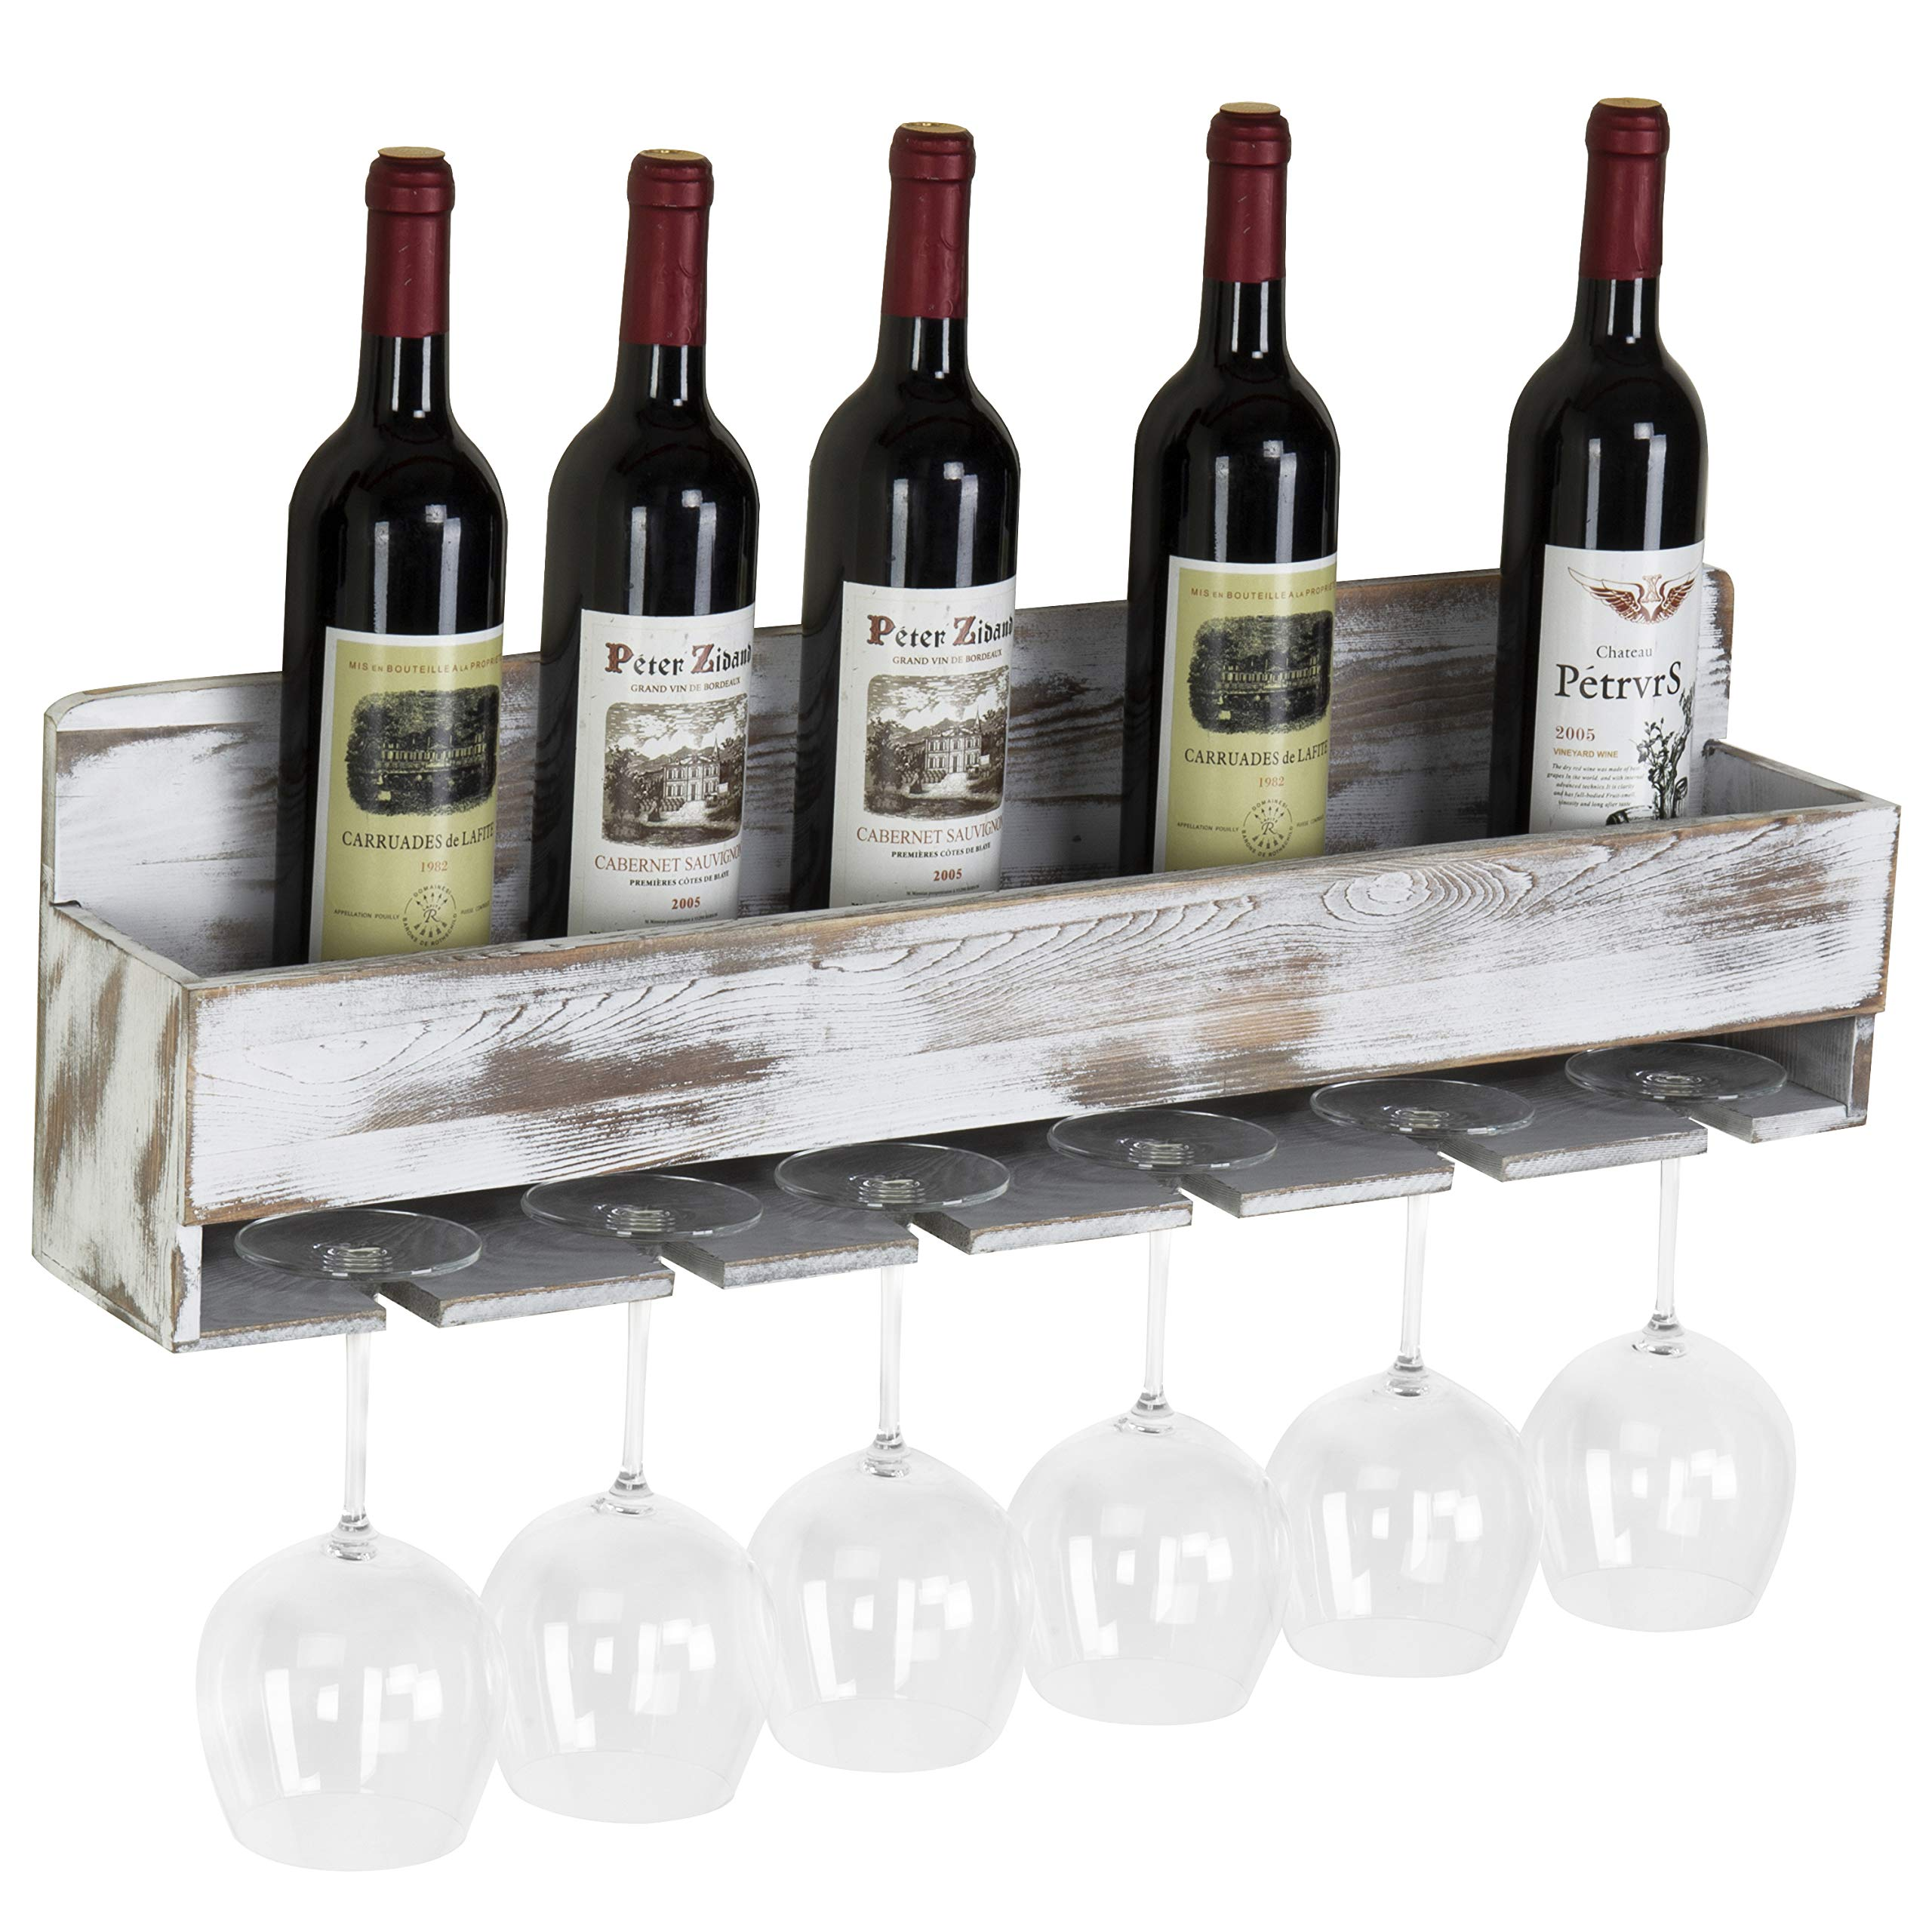 MyGift Rustic Whitewashed Wood Wall-Mounted Wine Rack with Bottle & Glass Holder by MyGift (Image #4)